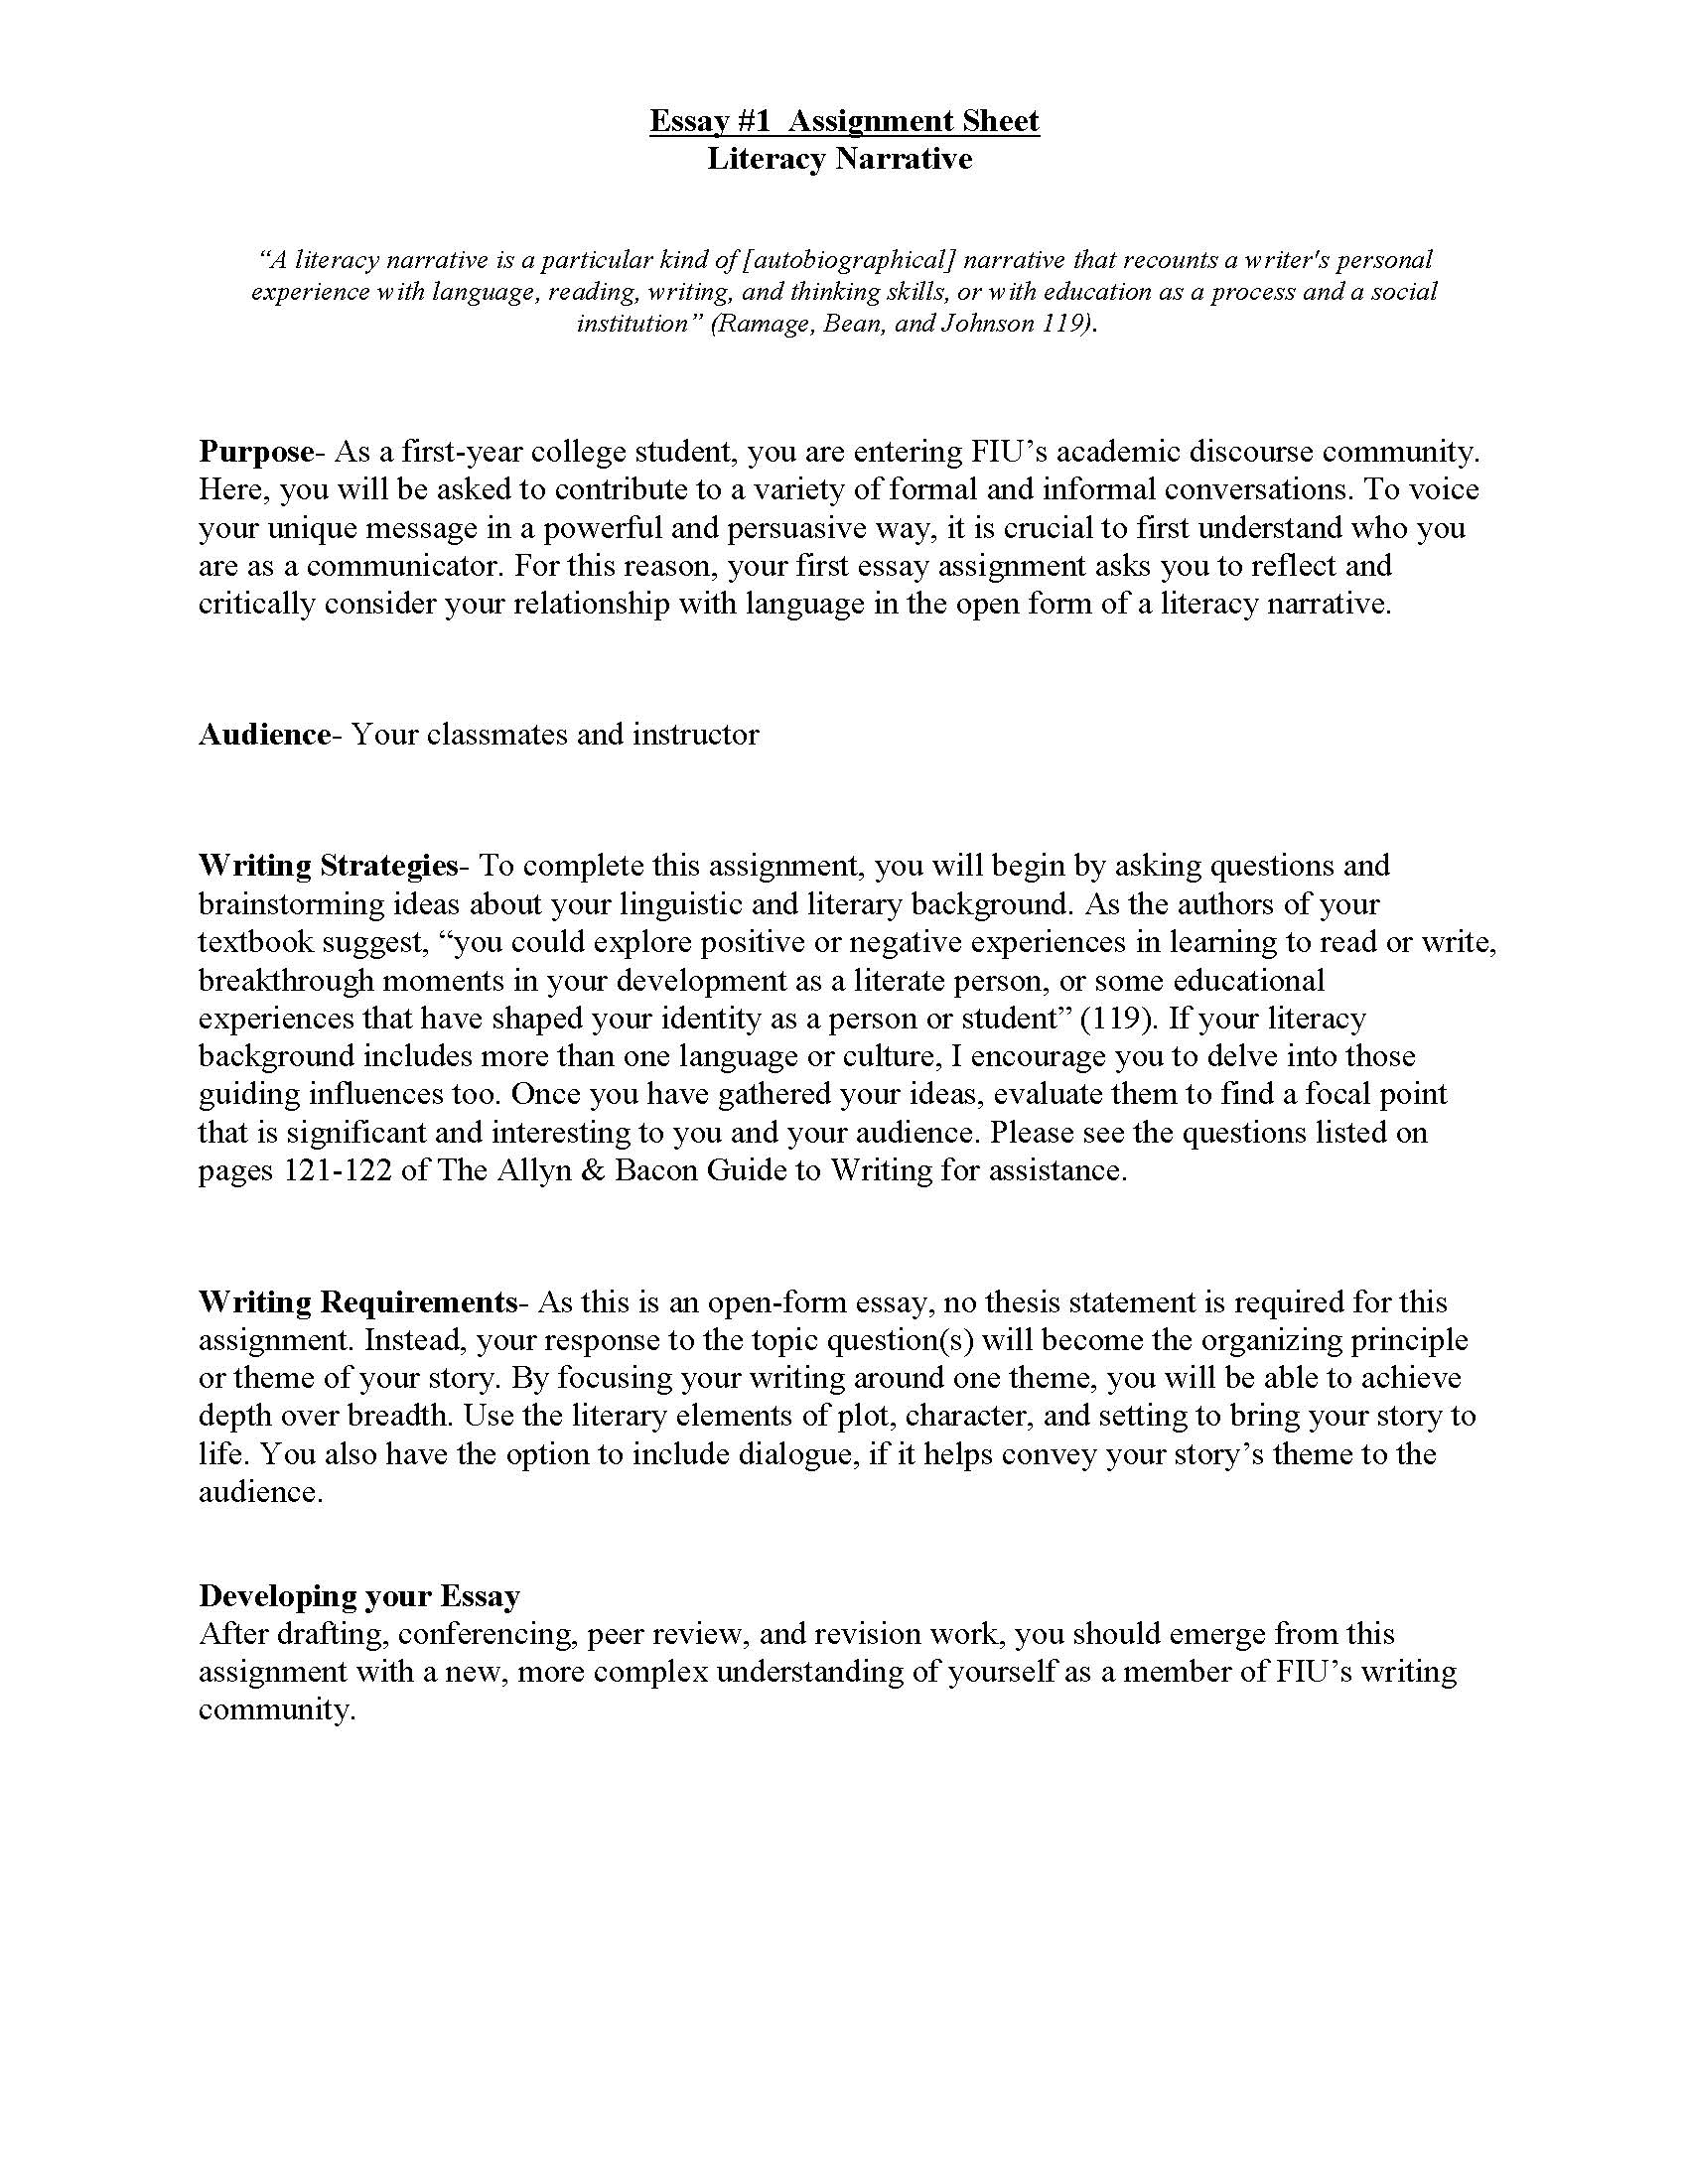 020 Essay Example Literacy Narrative Unit Assignment Spring 2012 Page 1 Fascinating Define Nonfiction Full